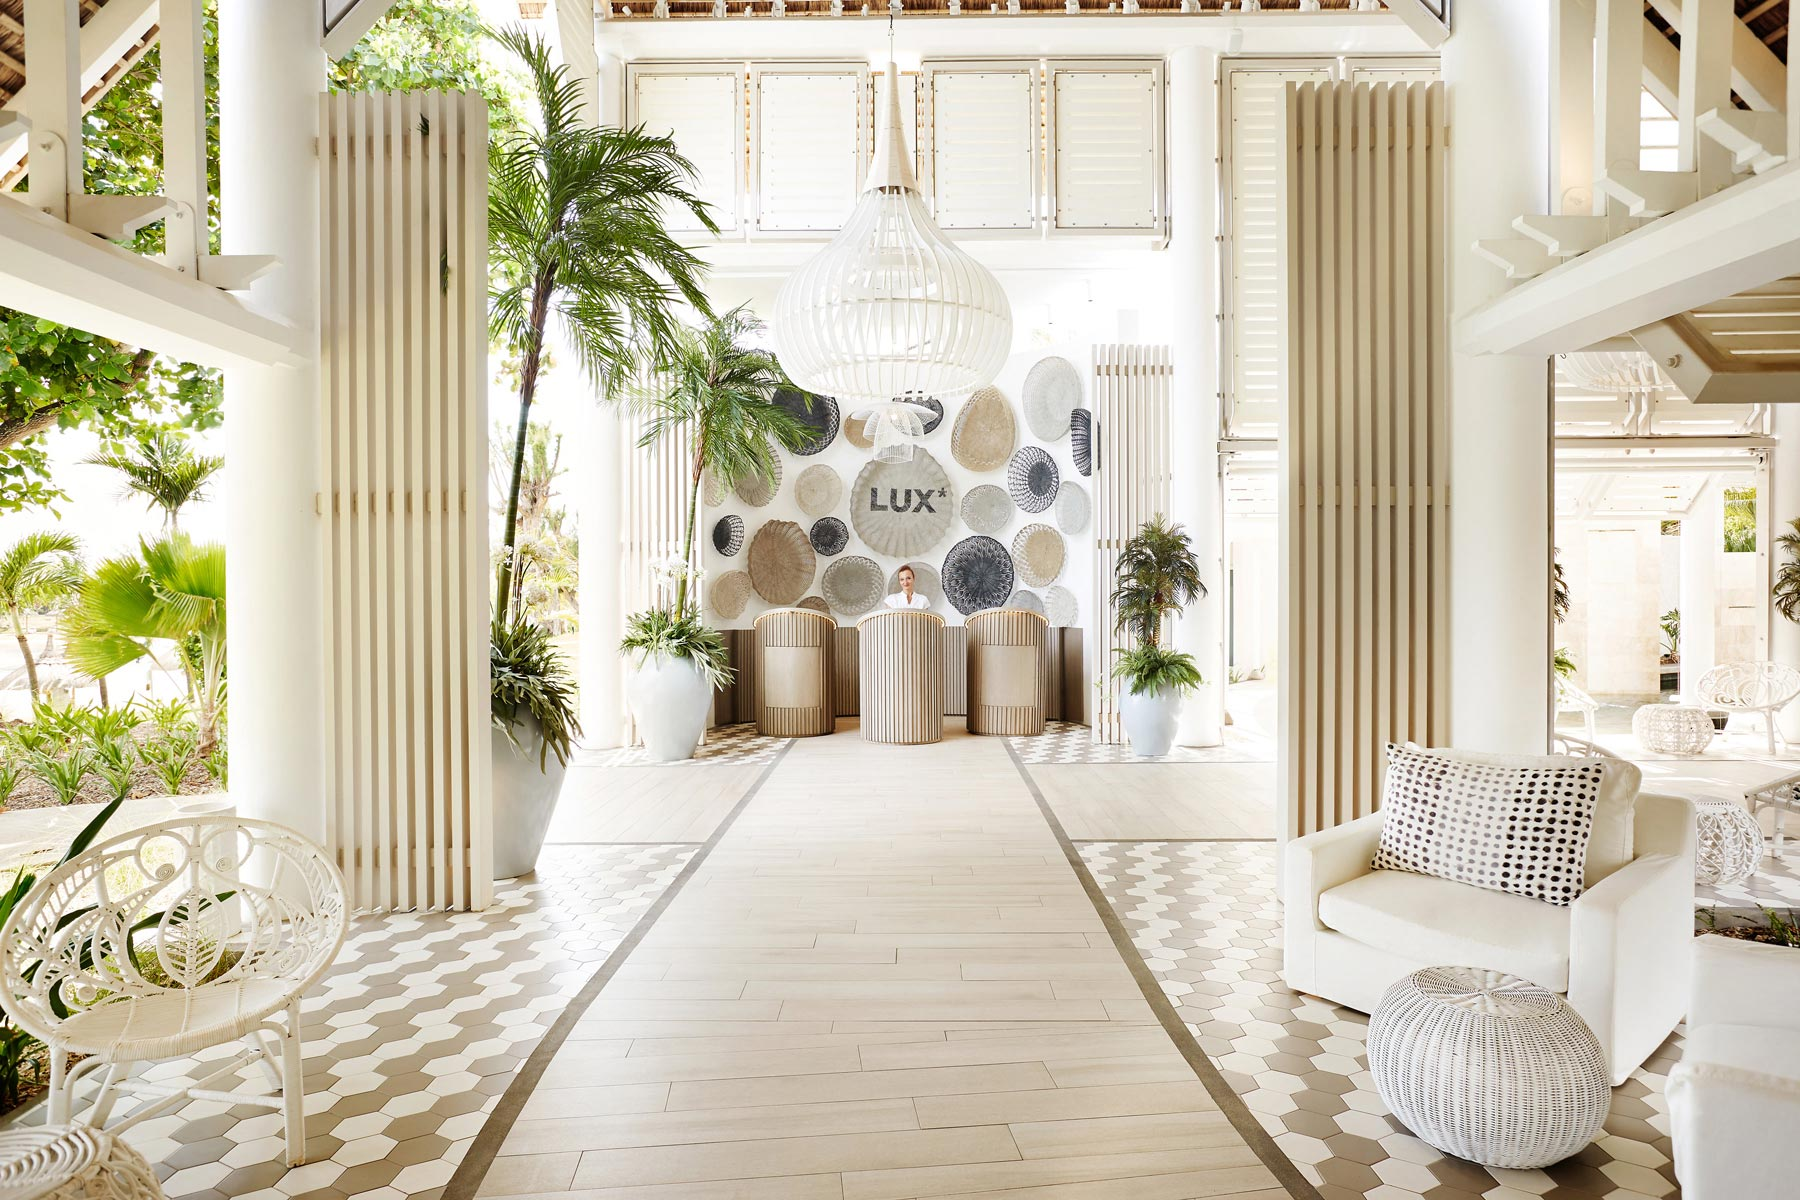 hotel design hotel design Hotel design: Luxurious hotels that will inspire you Lux Hotel Resort     Mauritius Kelly Hoppen 3